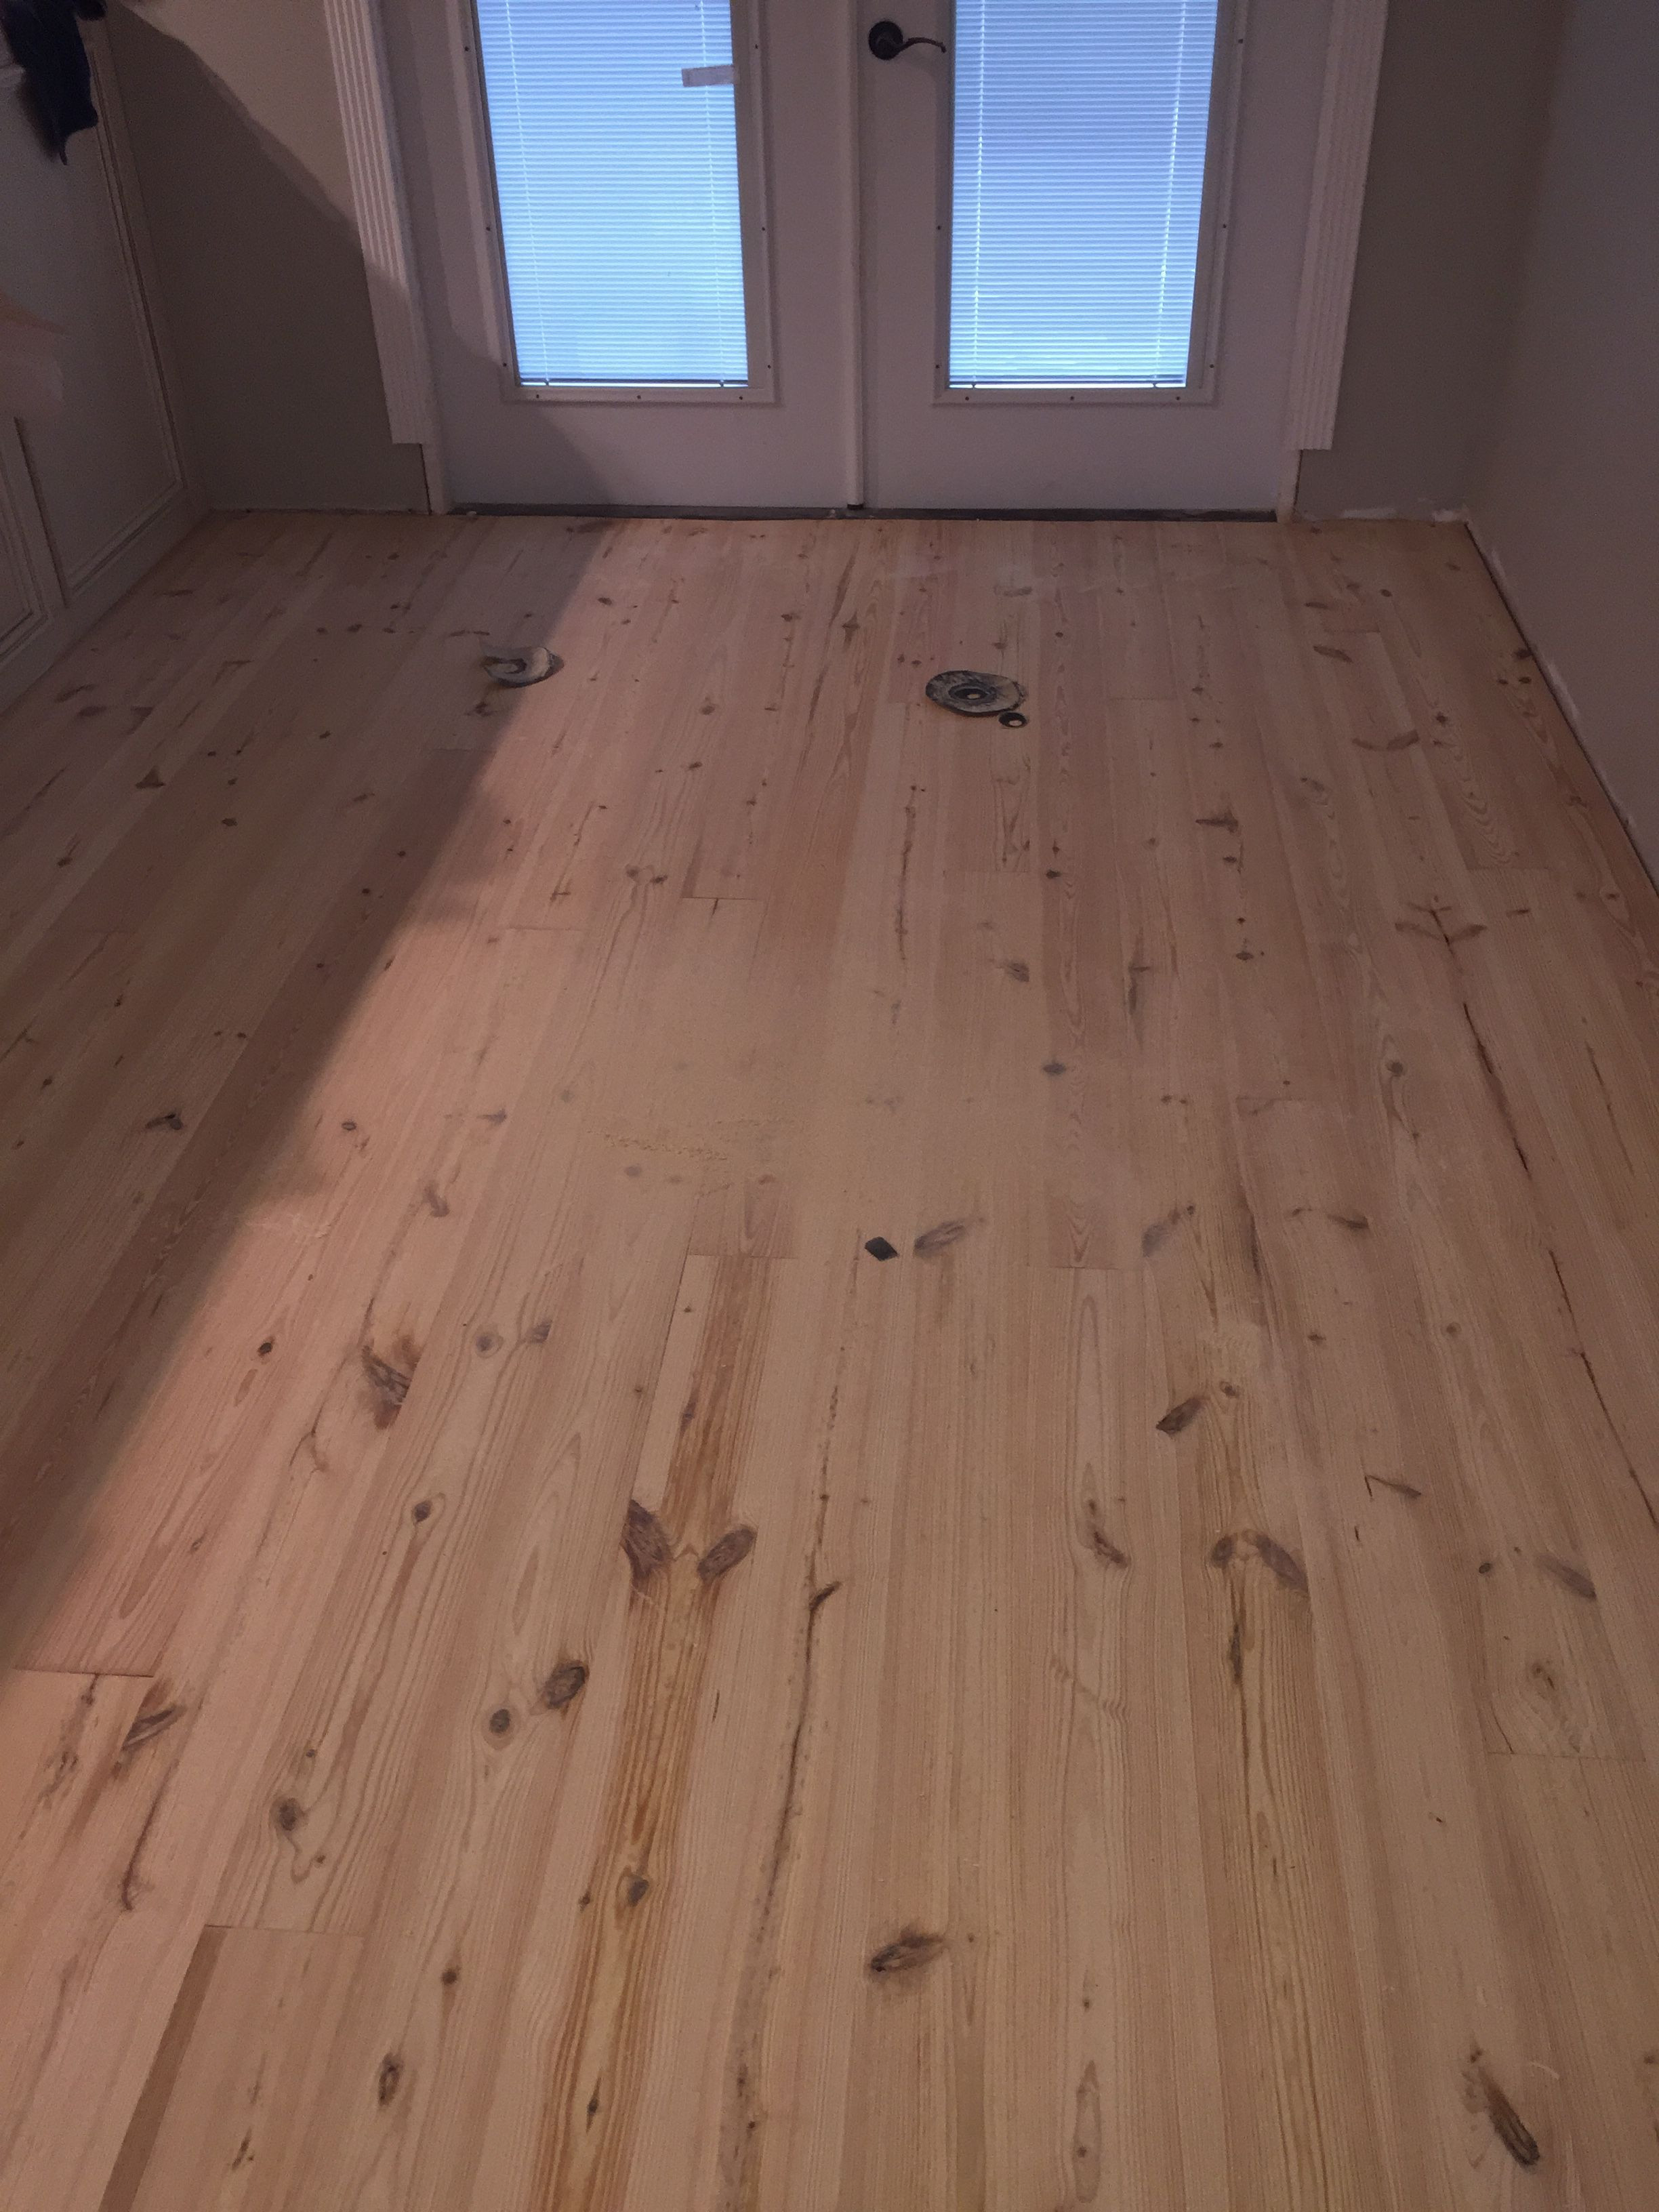 hardwood floor refinishing toronto on of direct flooring fabulous discount hardwood flooring 0 floor brampton in direct flooring unfinished southern longleaf pine from syp direct ms client direct flooring hardwood